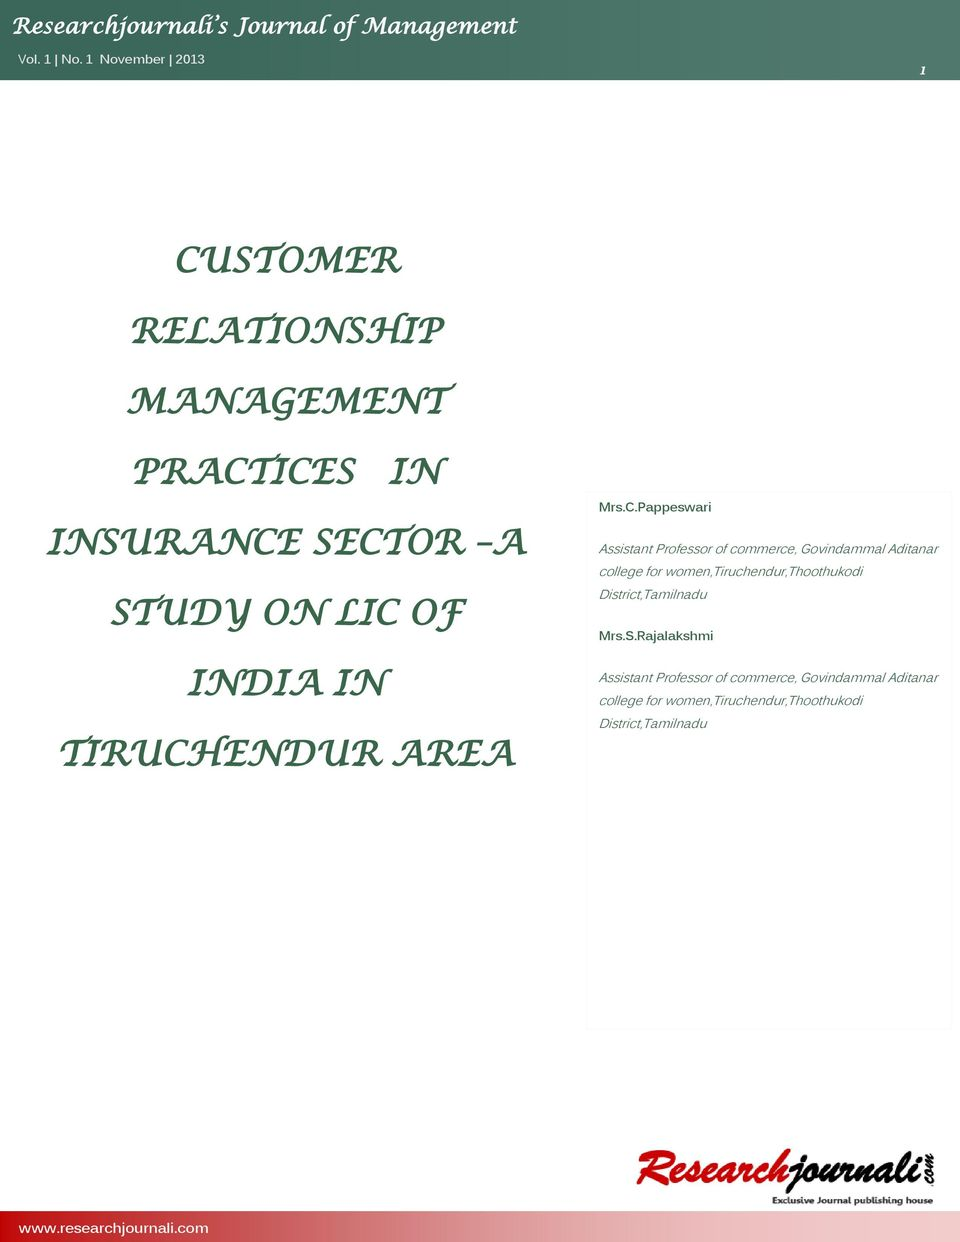 Thesis on crm in insurance